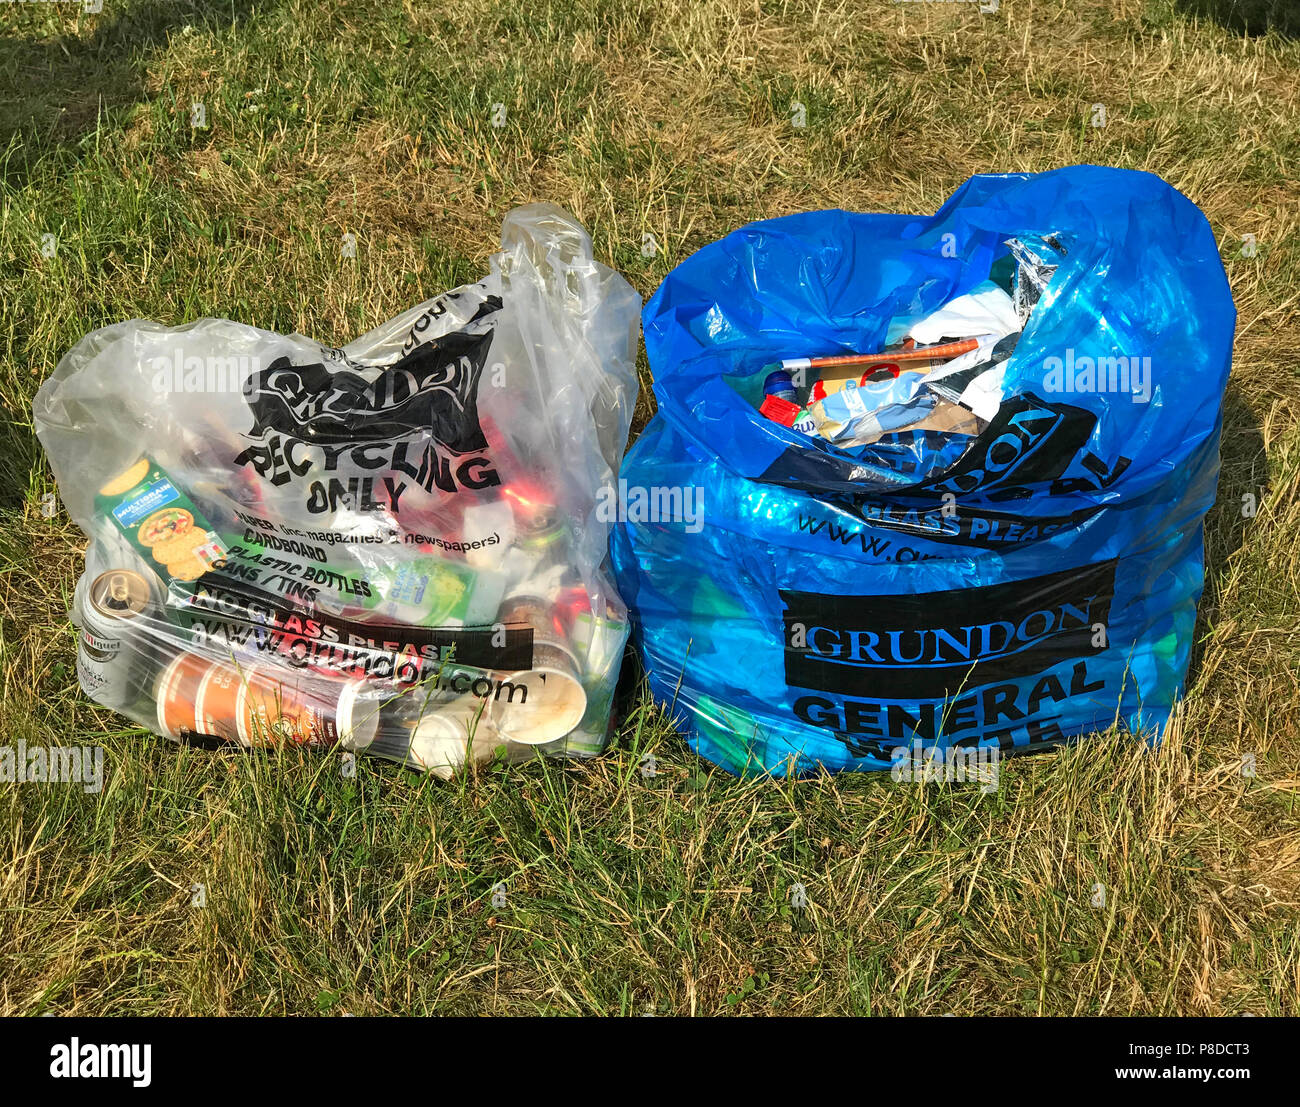 @HotpixUK,GoTonySmith,Silverstone,racing circuit,F1,GP,Formula One,Grand Prix,GrandPrix,2018,waste,refuse,campers,recycling,camping field,recycle,waste management